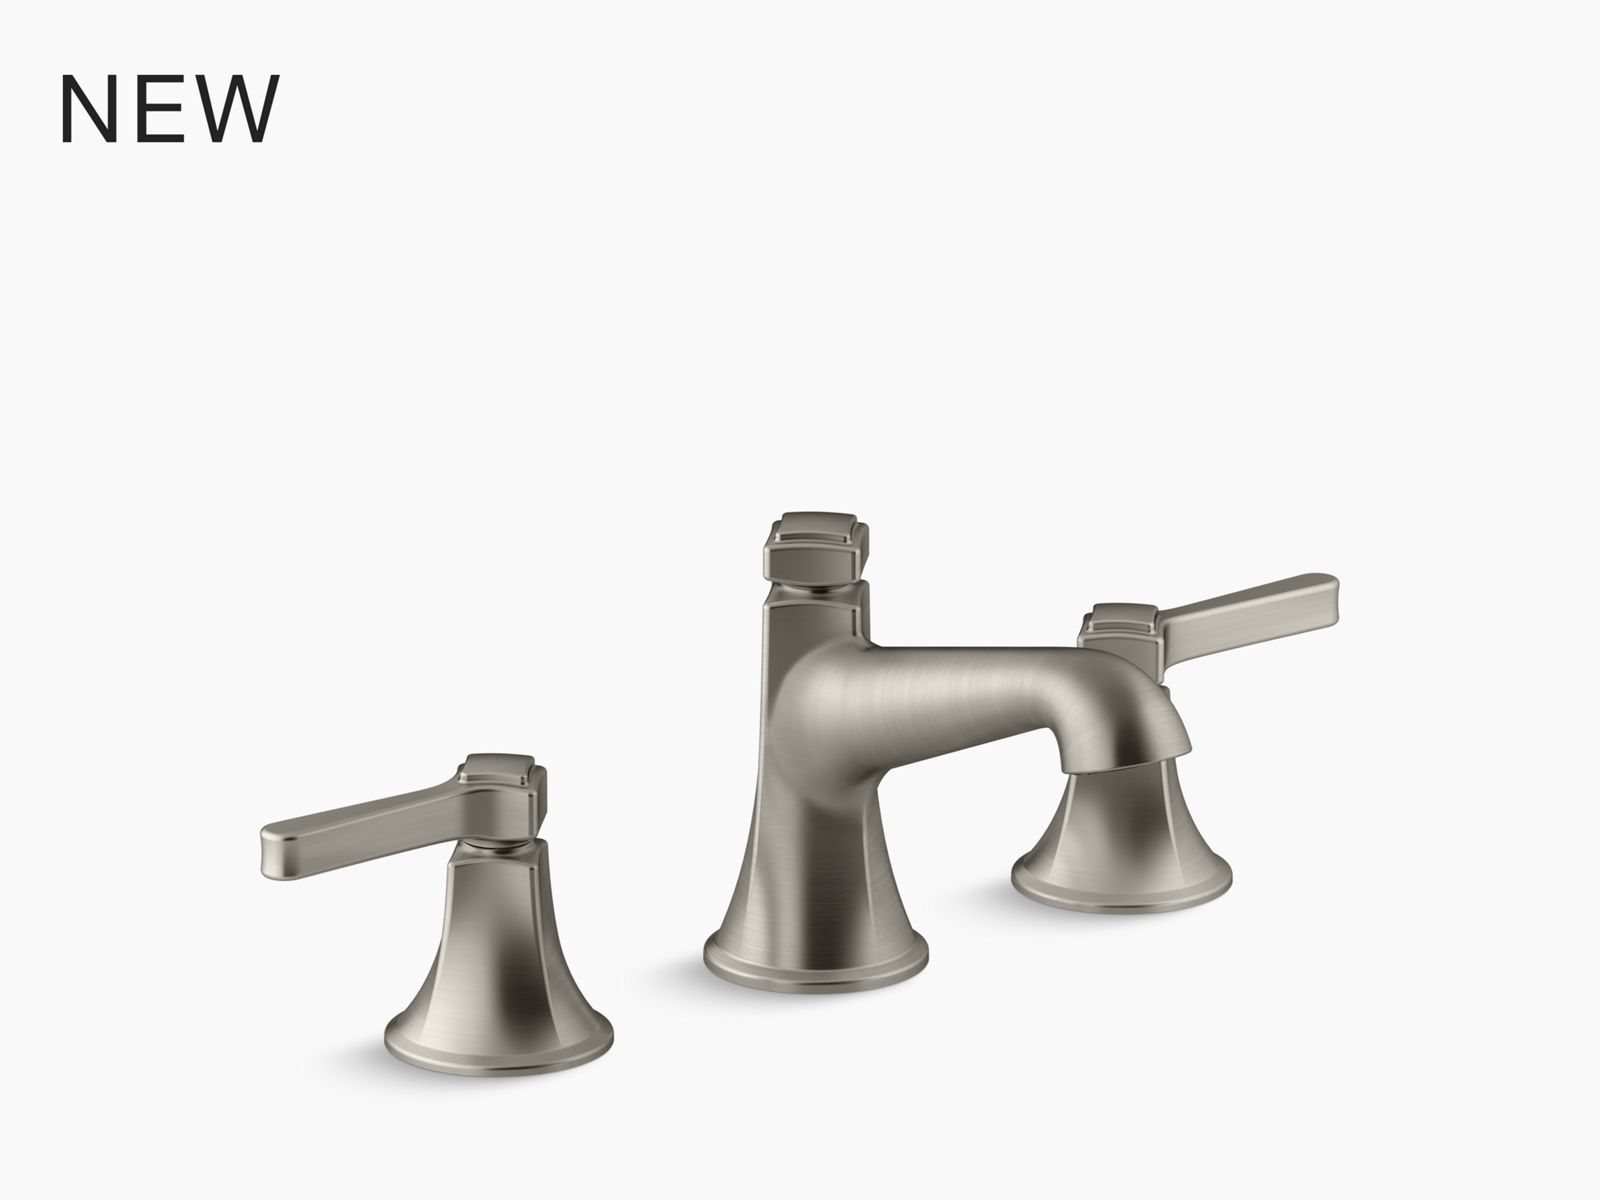 composed touchless faucet with kinesis sensor technology ac powered